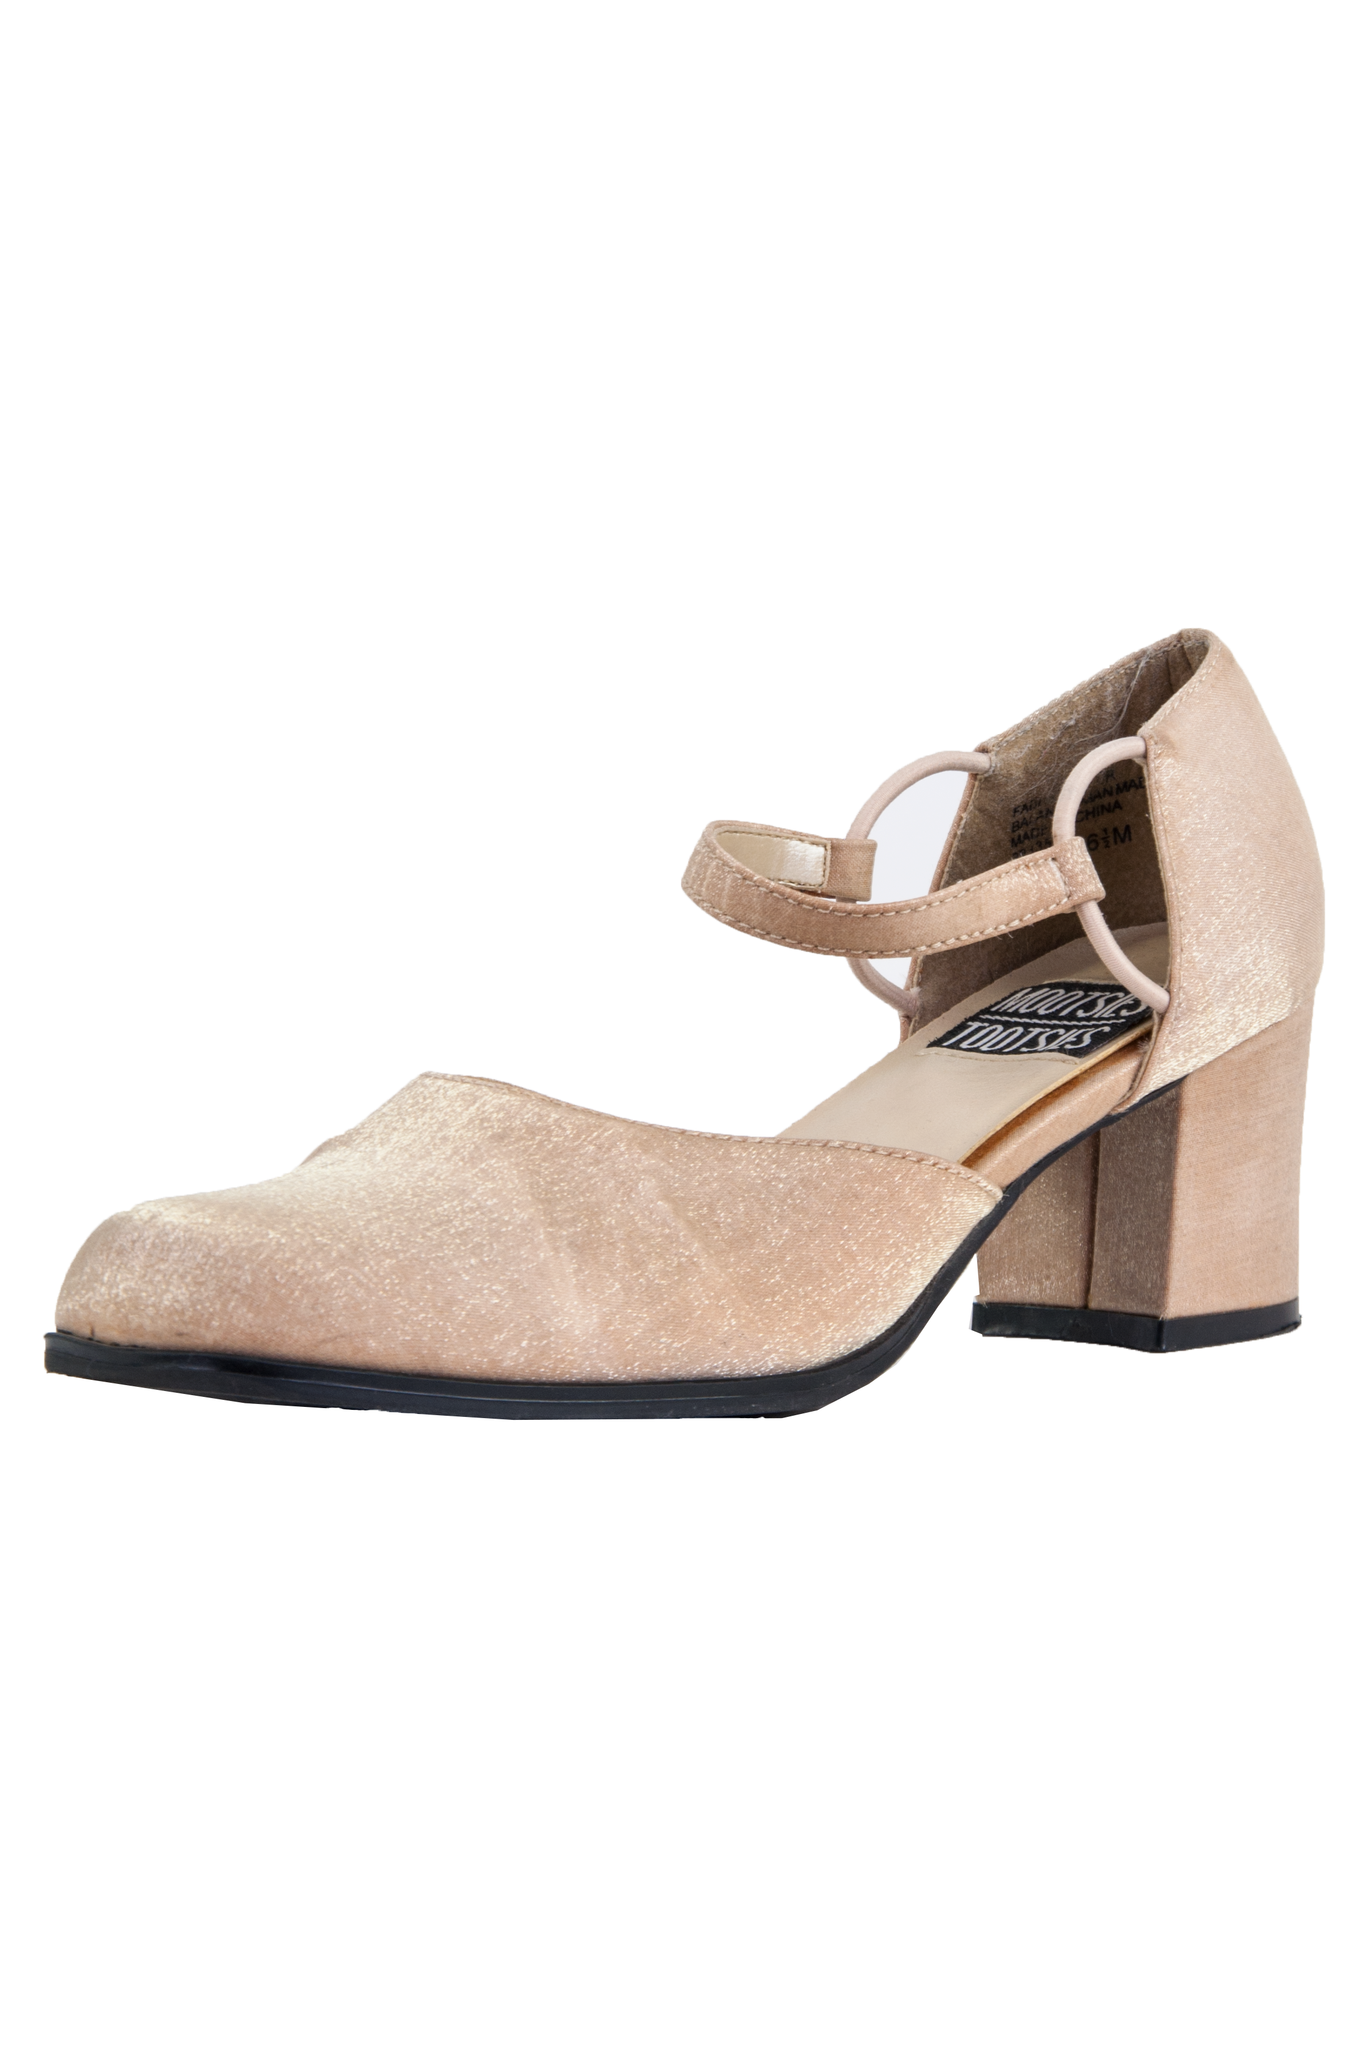 Glitter mary-jane shoe with high heel in tan